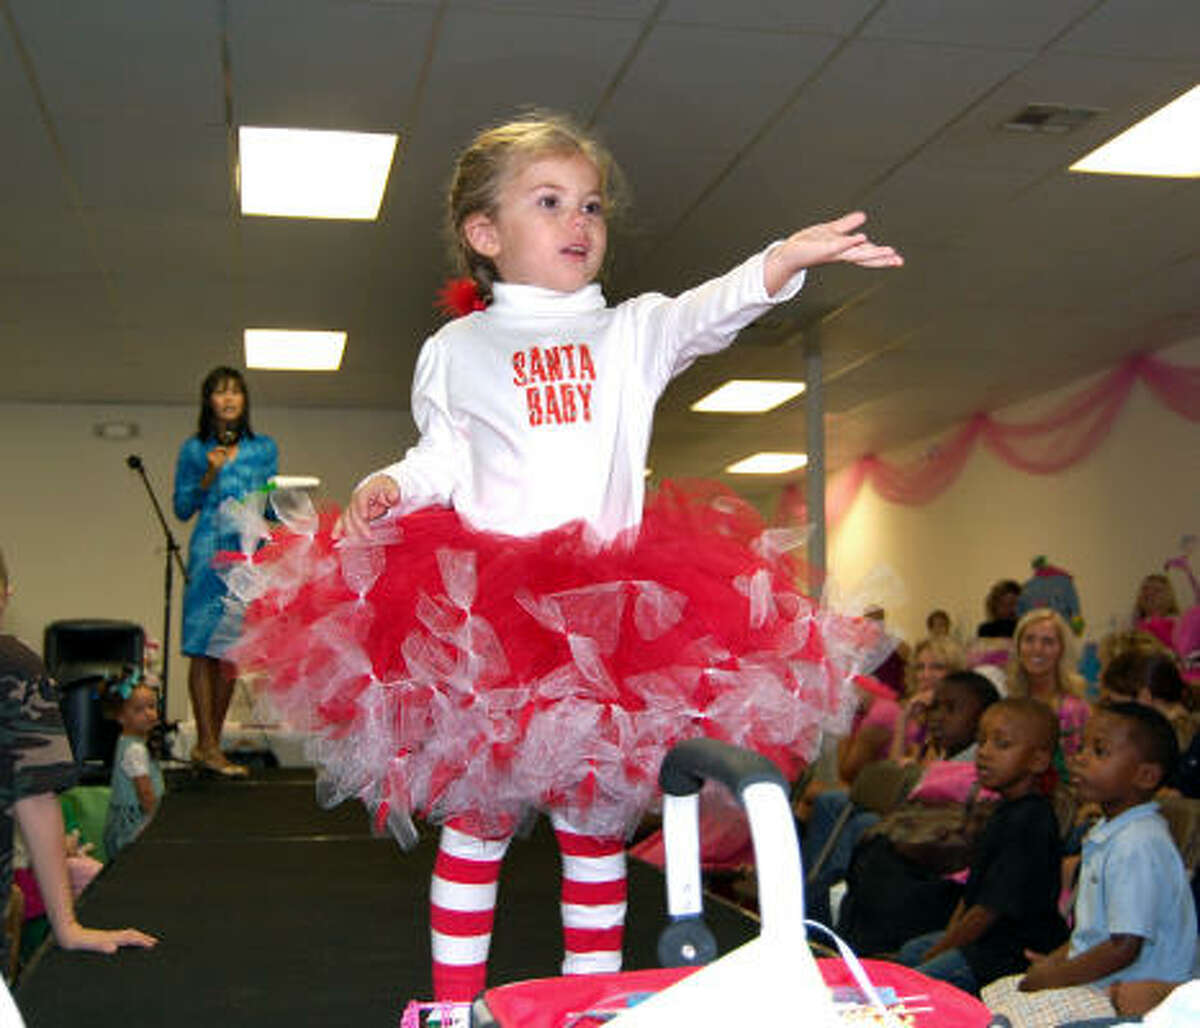 Mallory Rollins, 4, throws a kiss to the audience in her Christmas outfit at the Sept. 12 show. Children modeled back-to-school, Halloween, Thanksgiving and Christmas fashions.